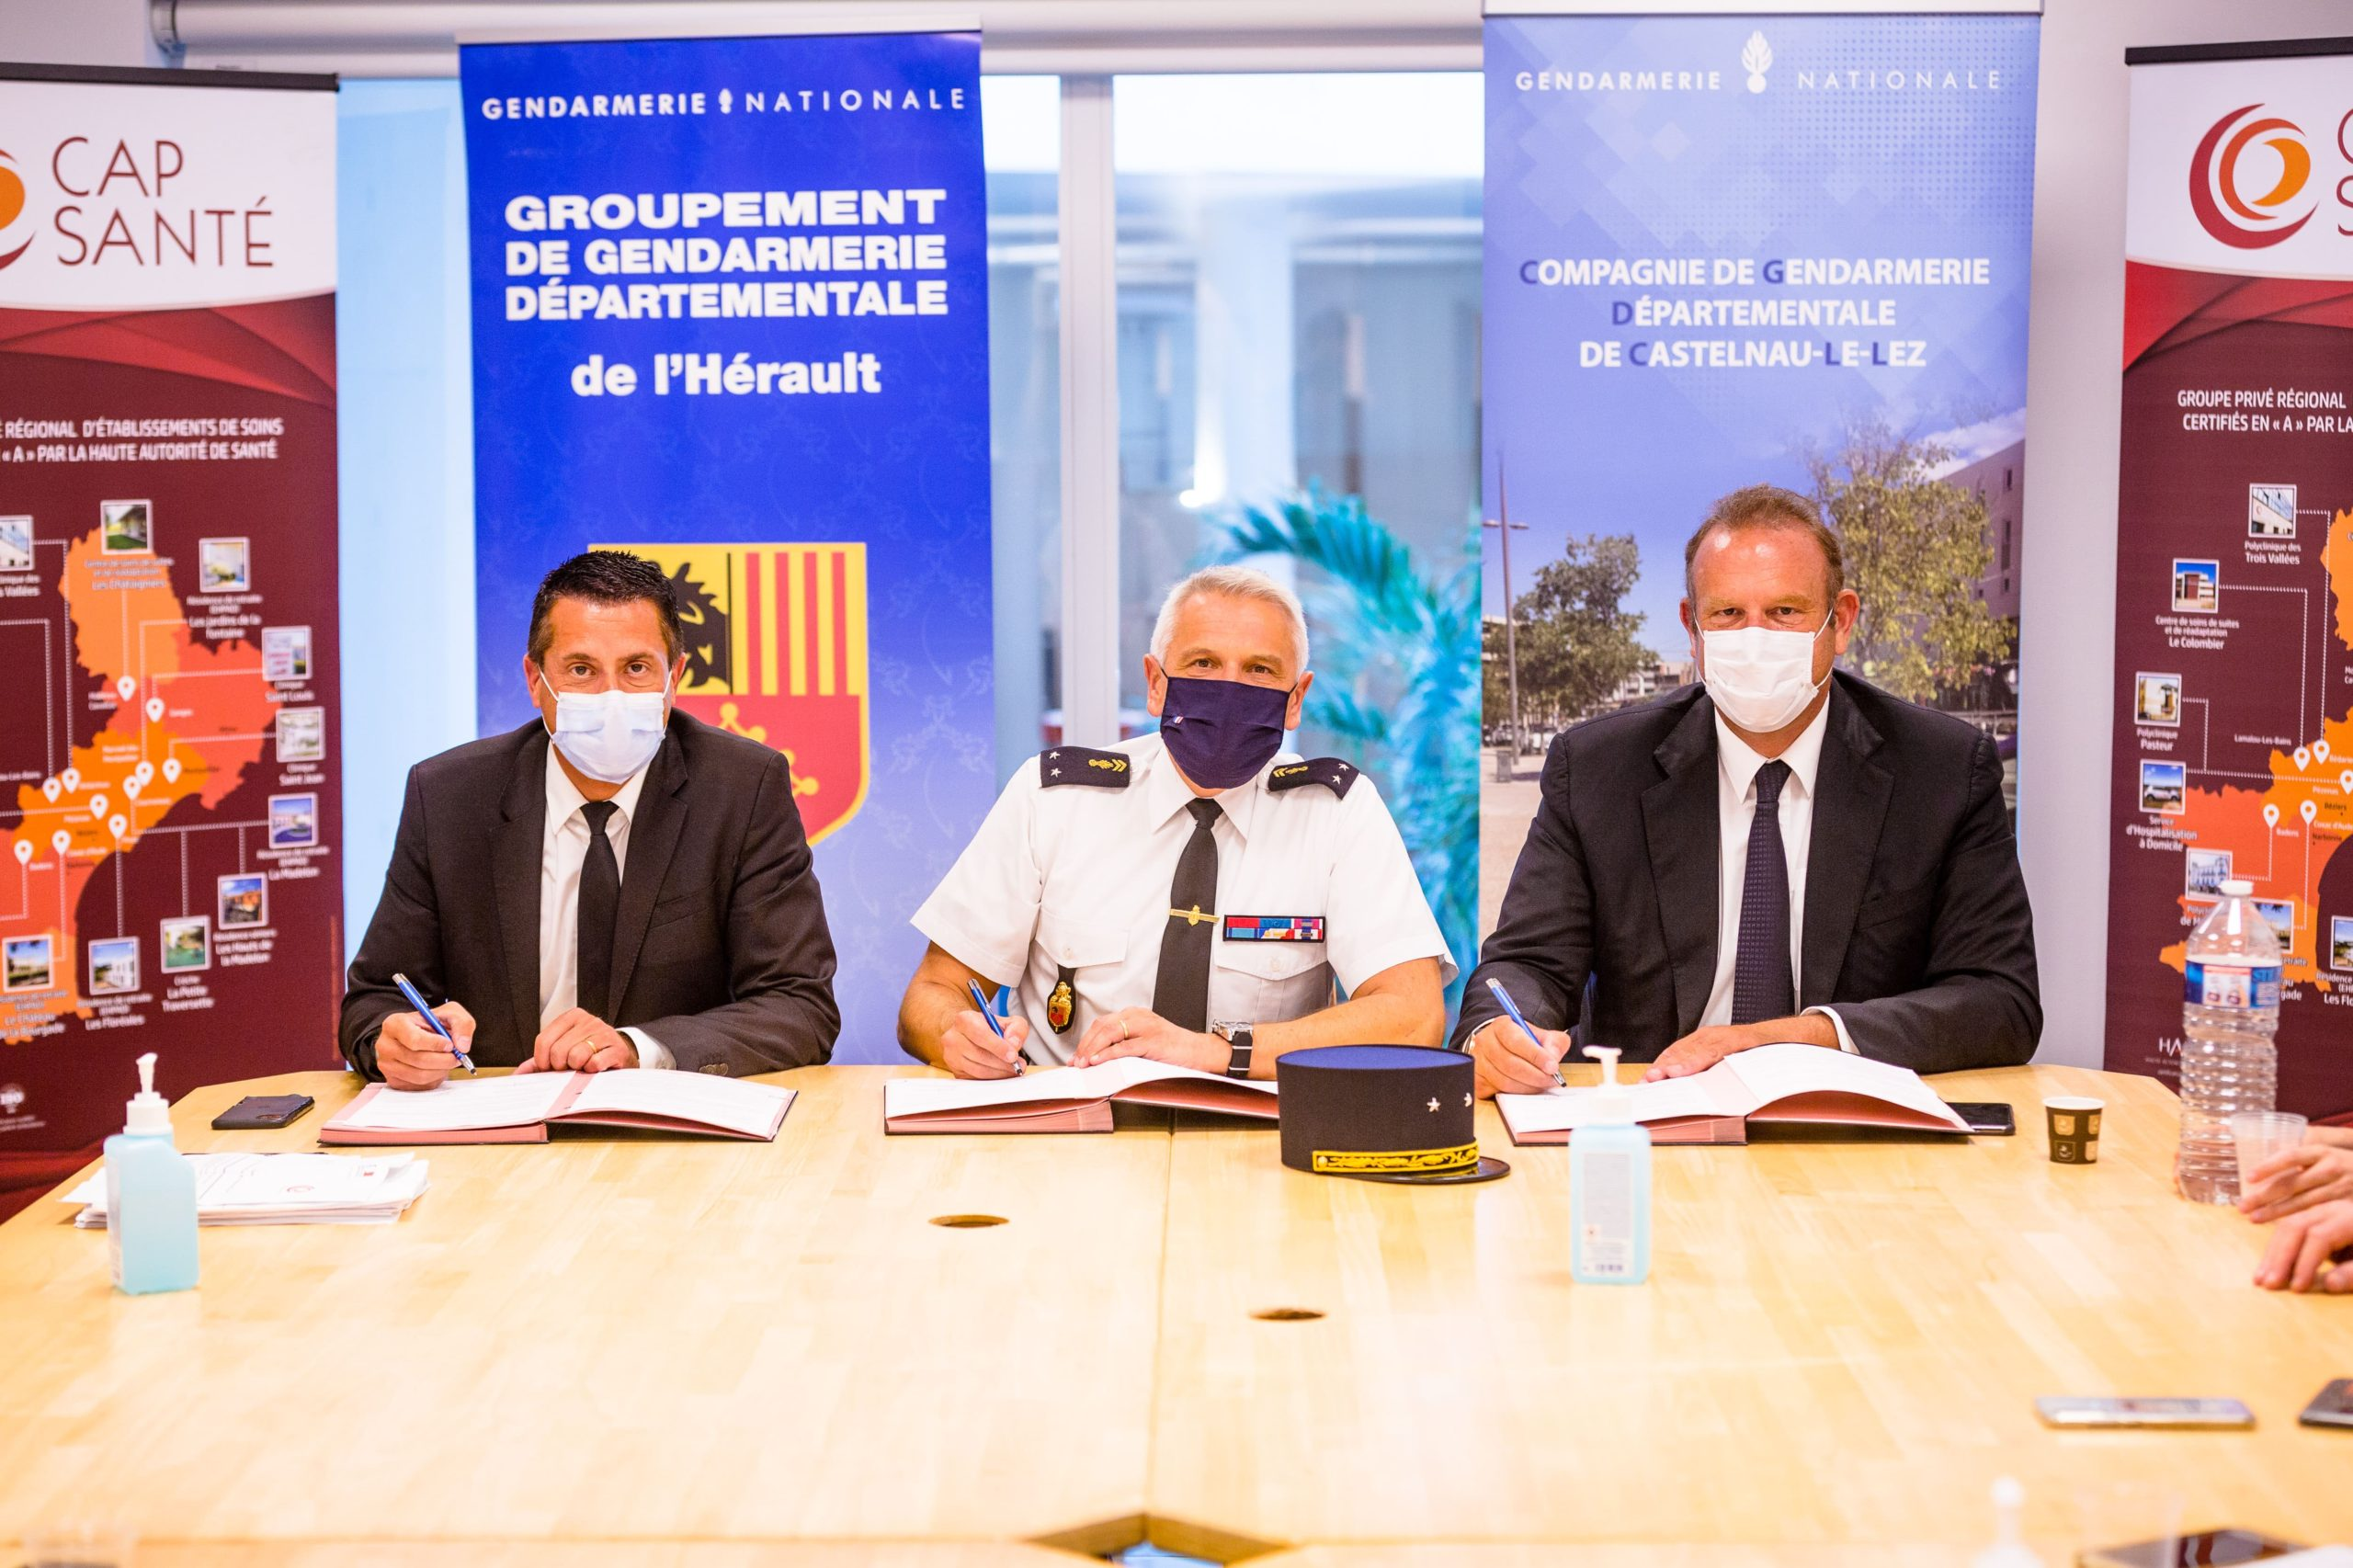 Signature convention - Gendarmerie